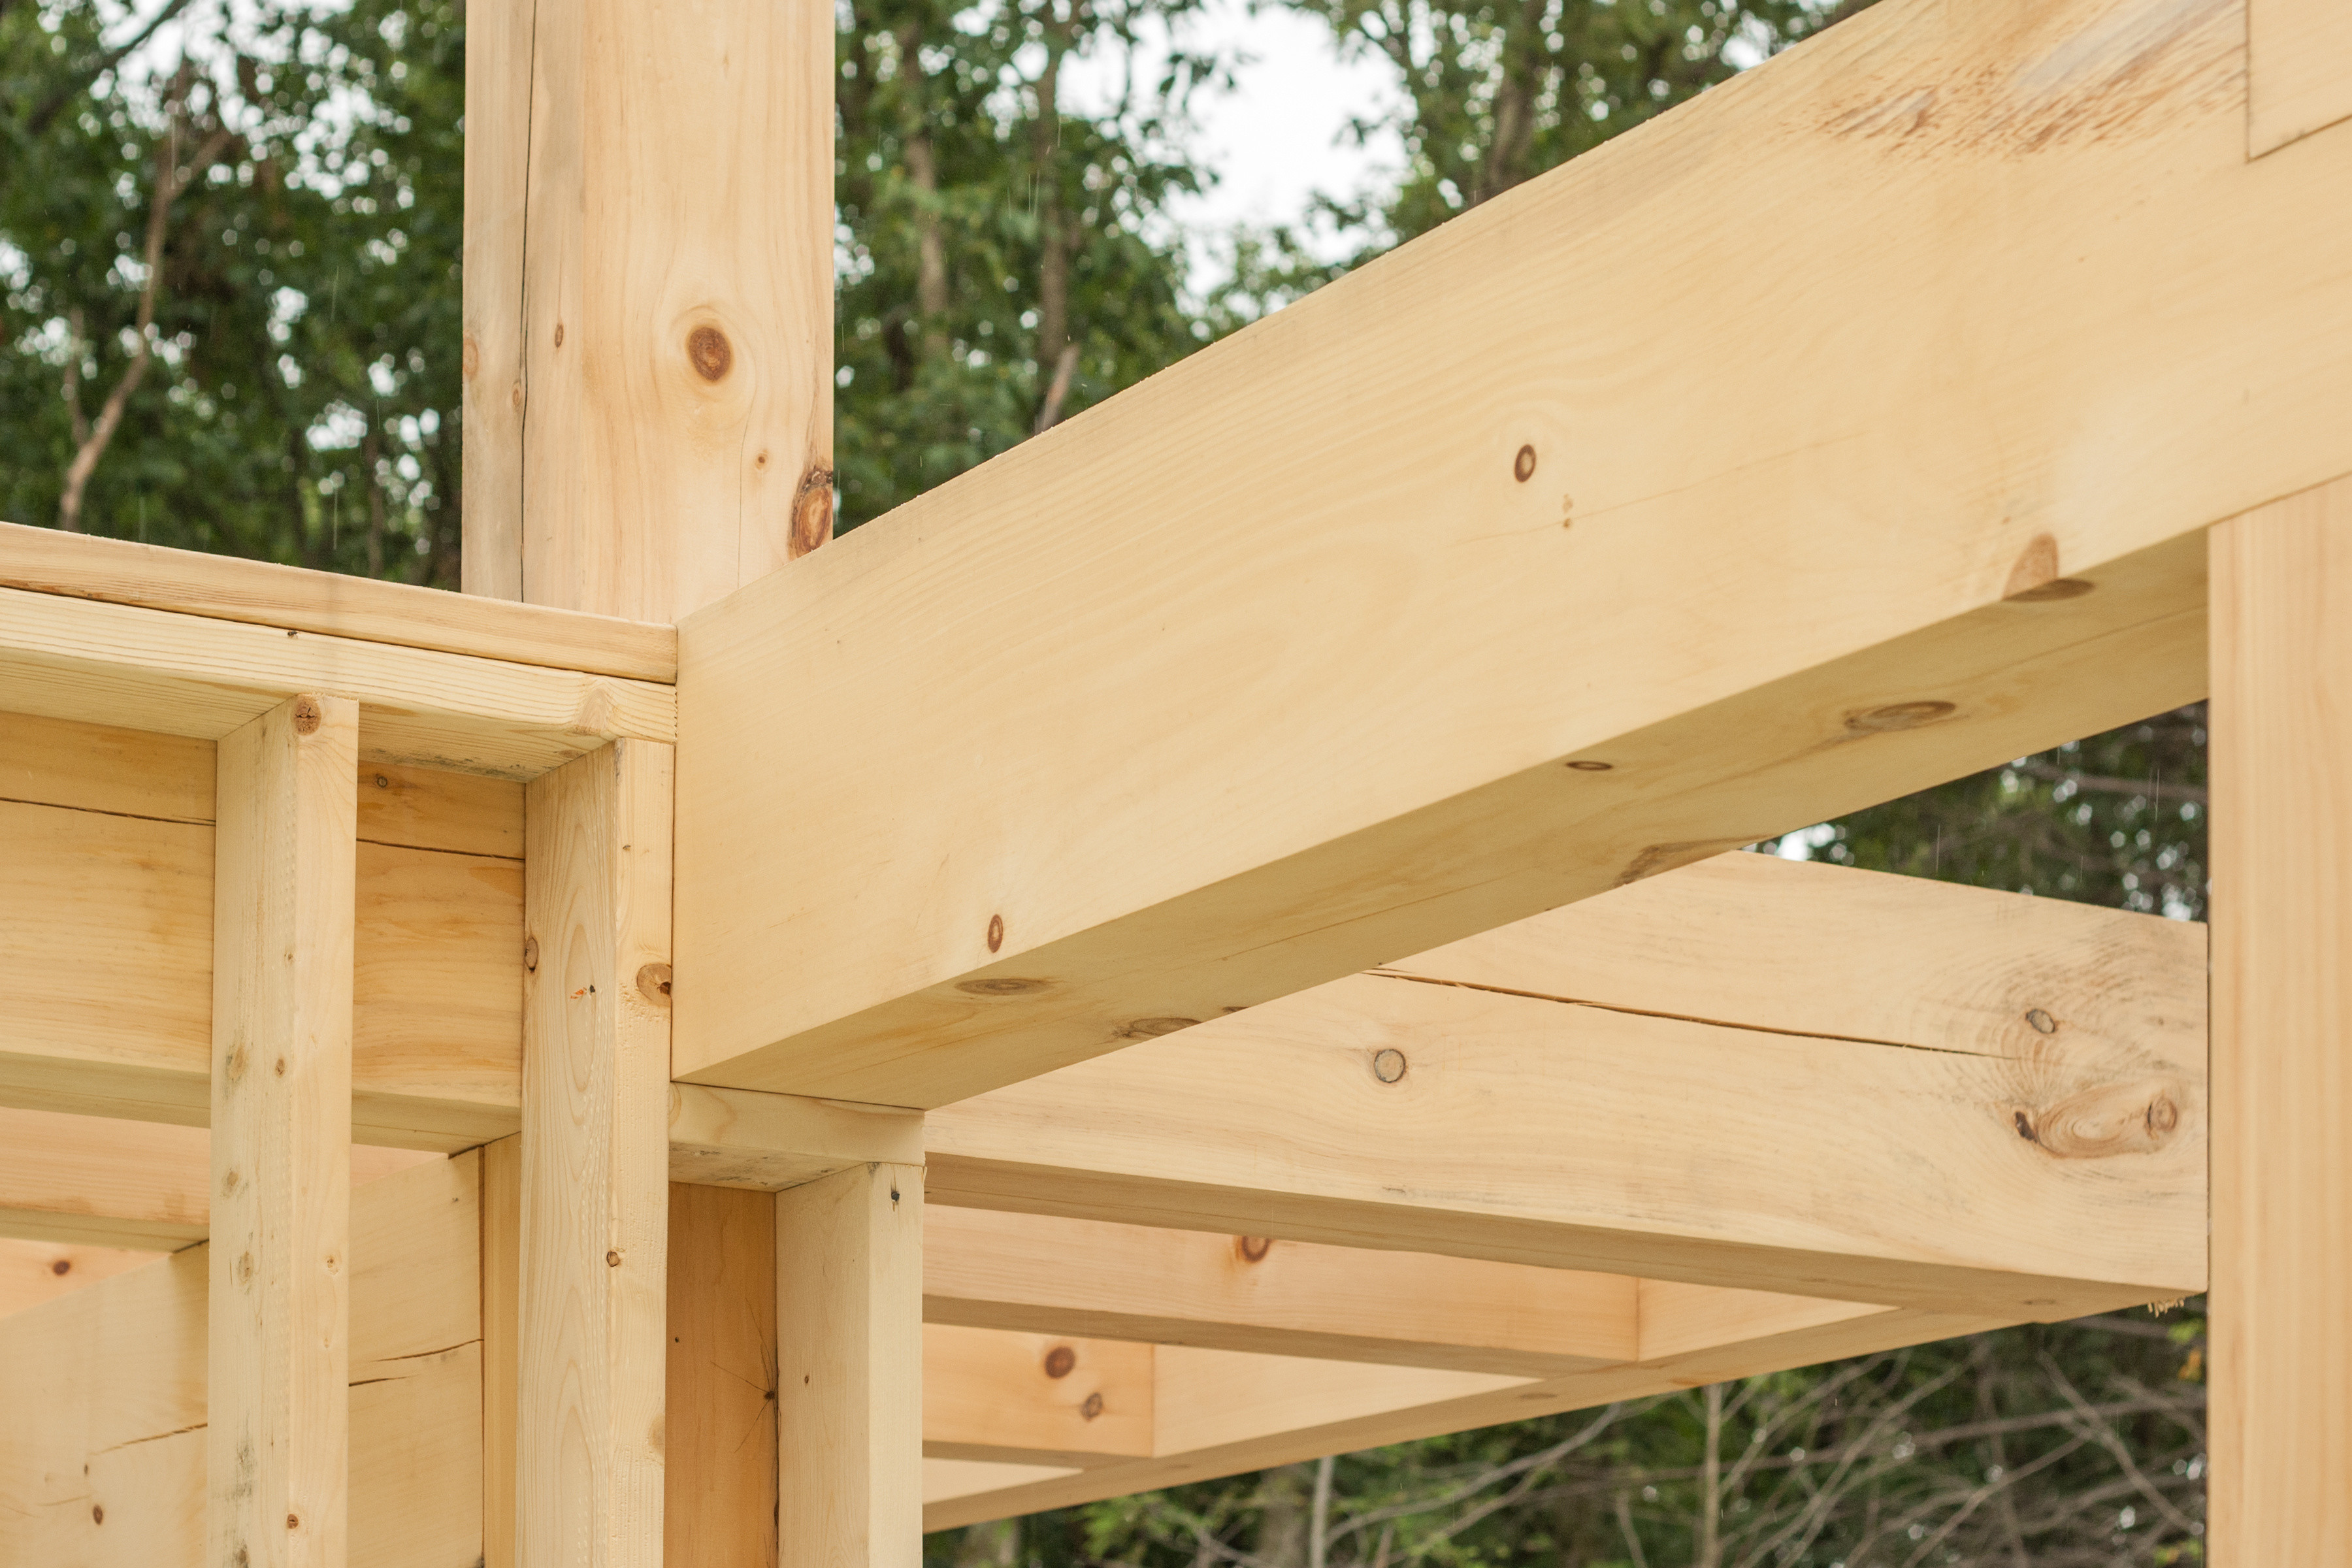 Post and Beam Home Construction: Part 3